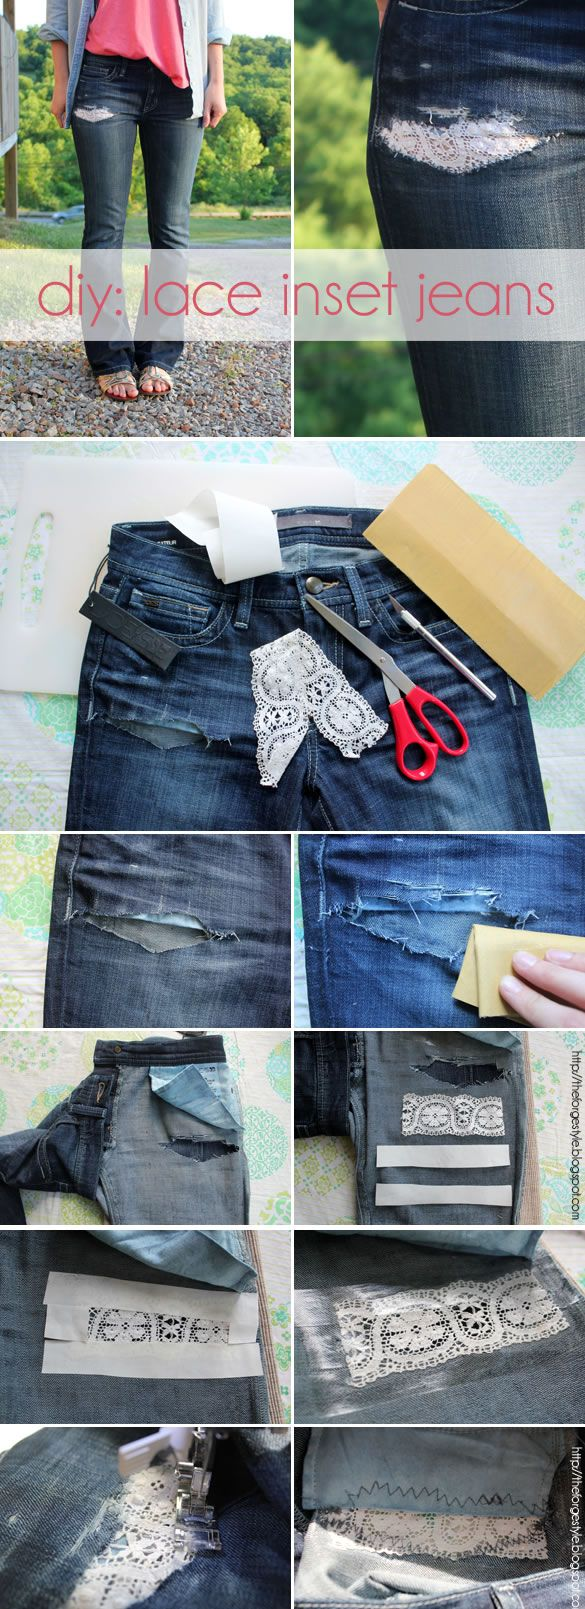 DIY Lace patch jeans